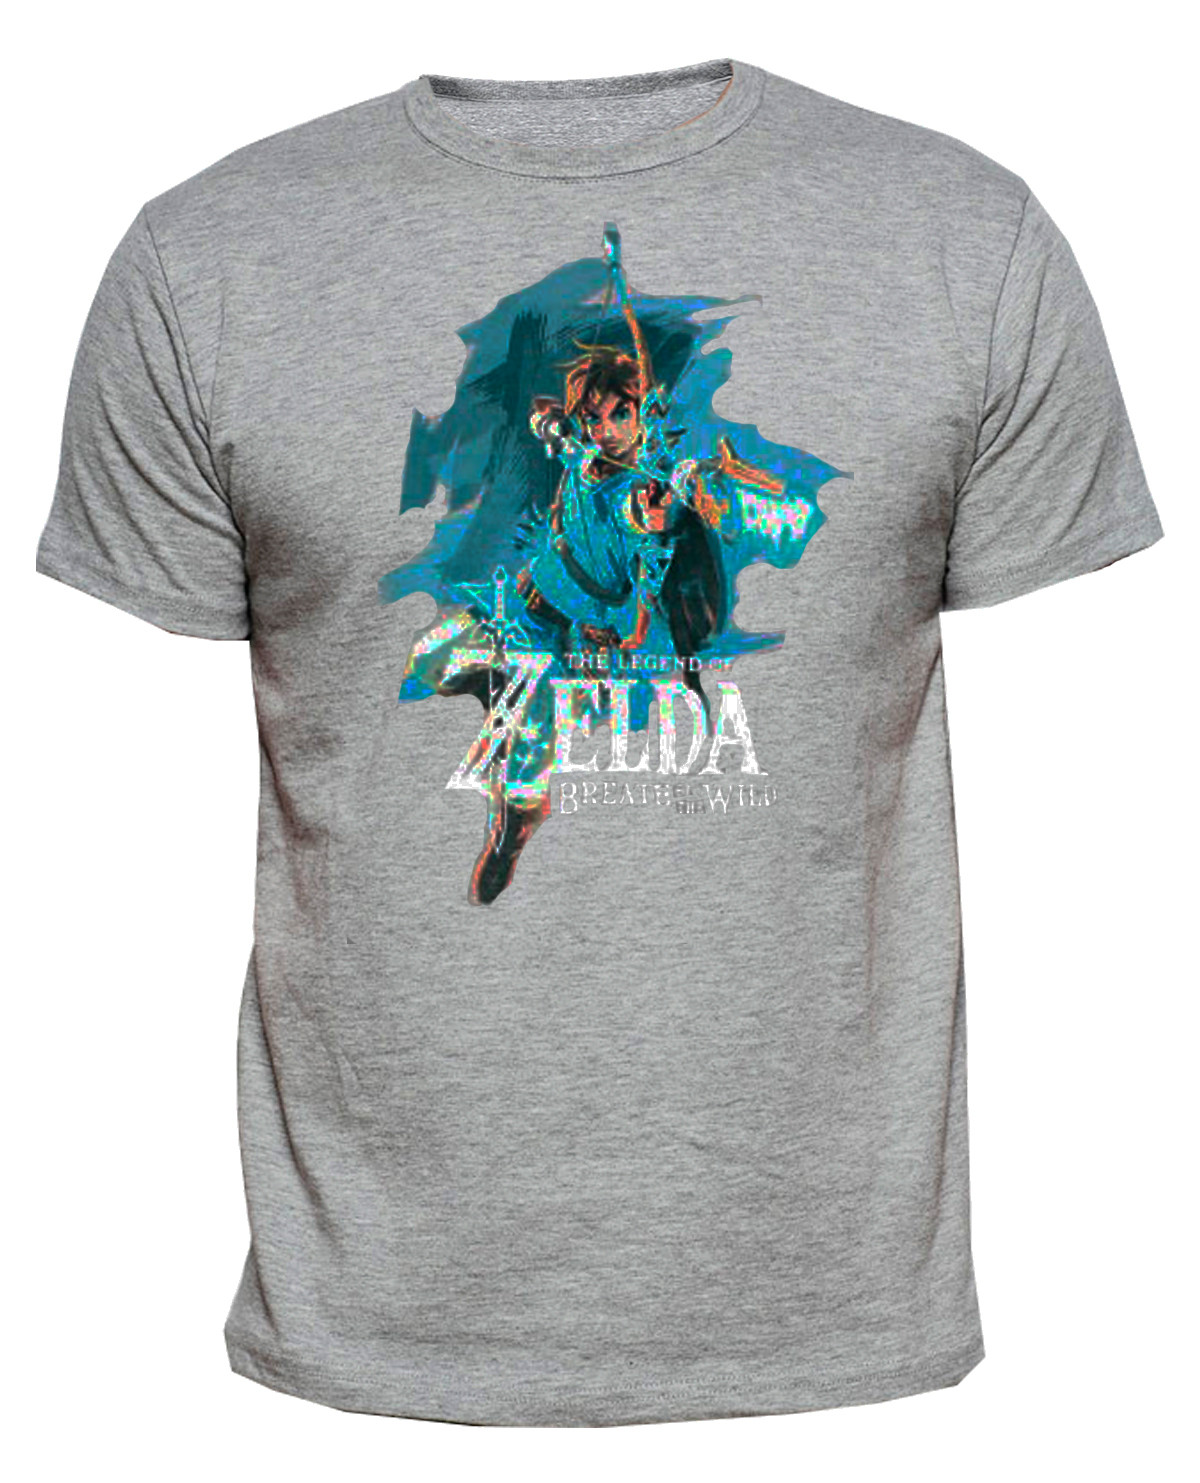 PLAYERA ZELDA BREATH OF THE WILD LINK ARQUERO GRIS MEDIANA para PRO ... 87950d21902e0